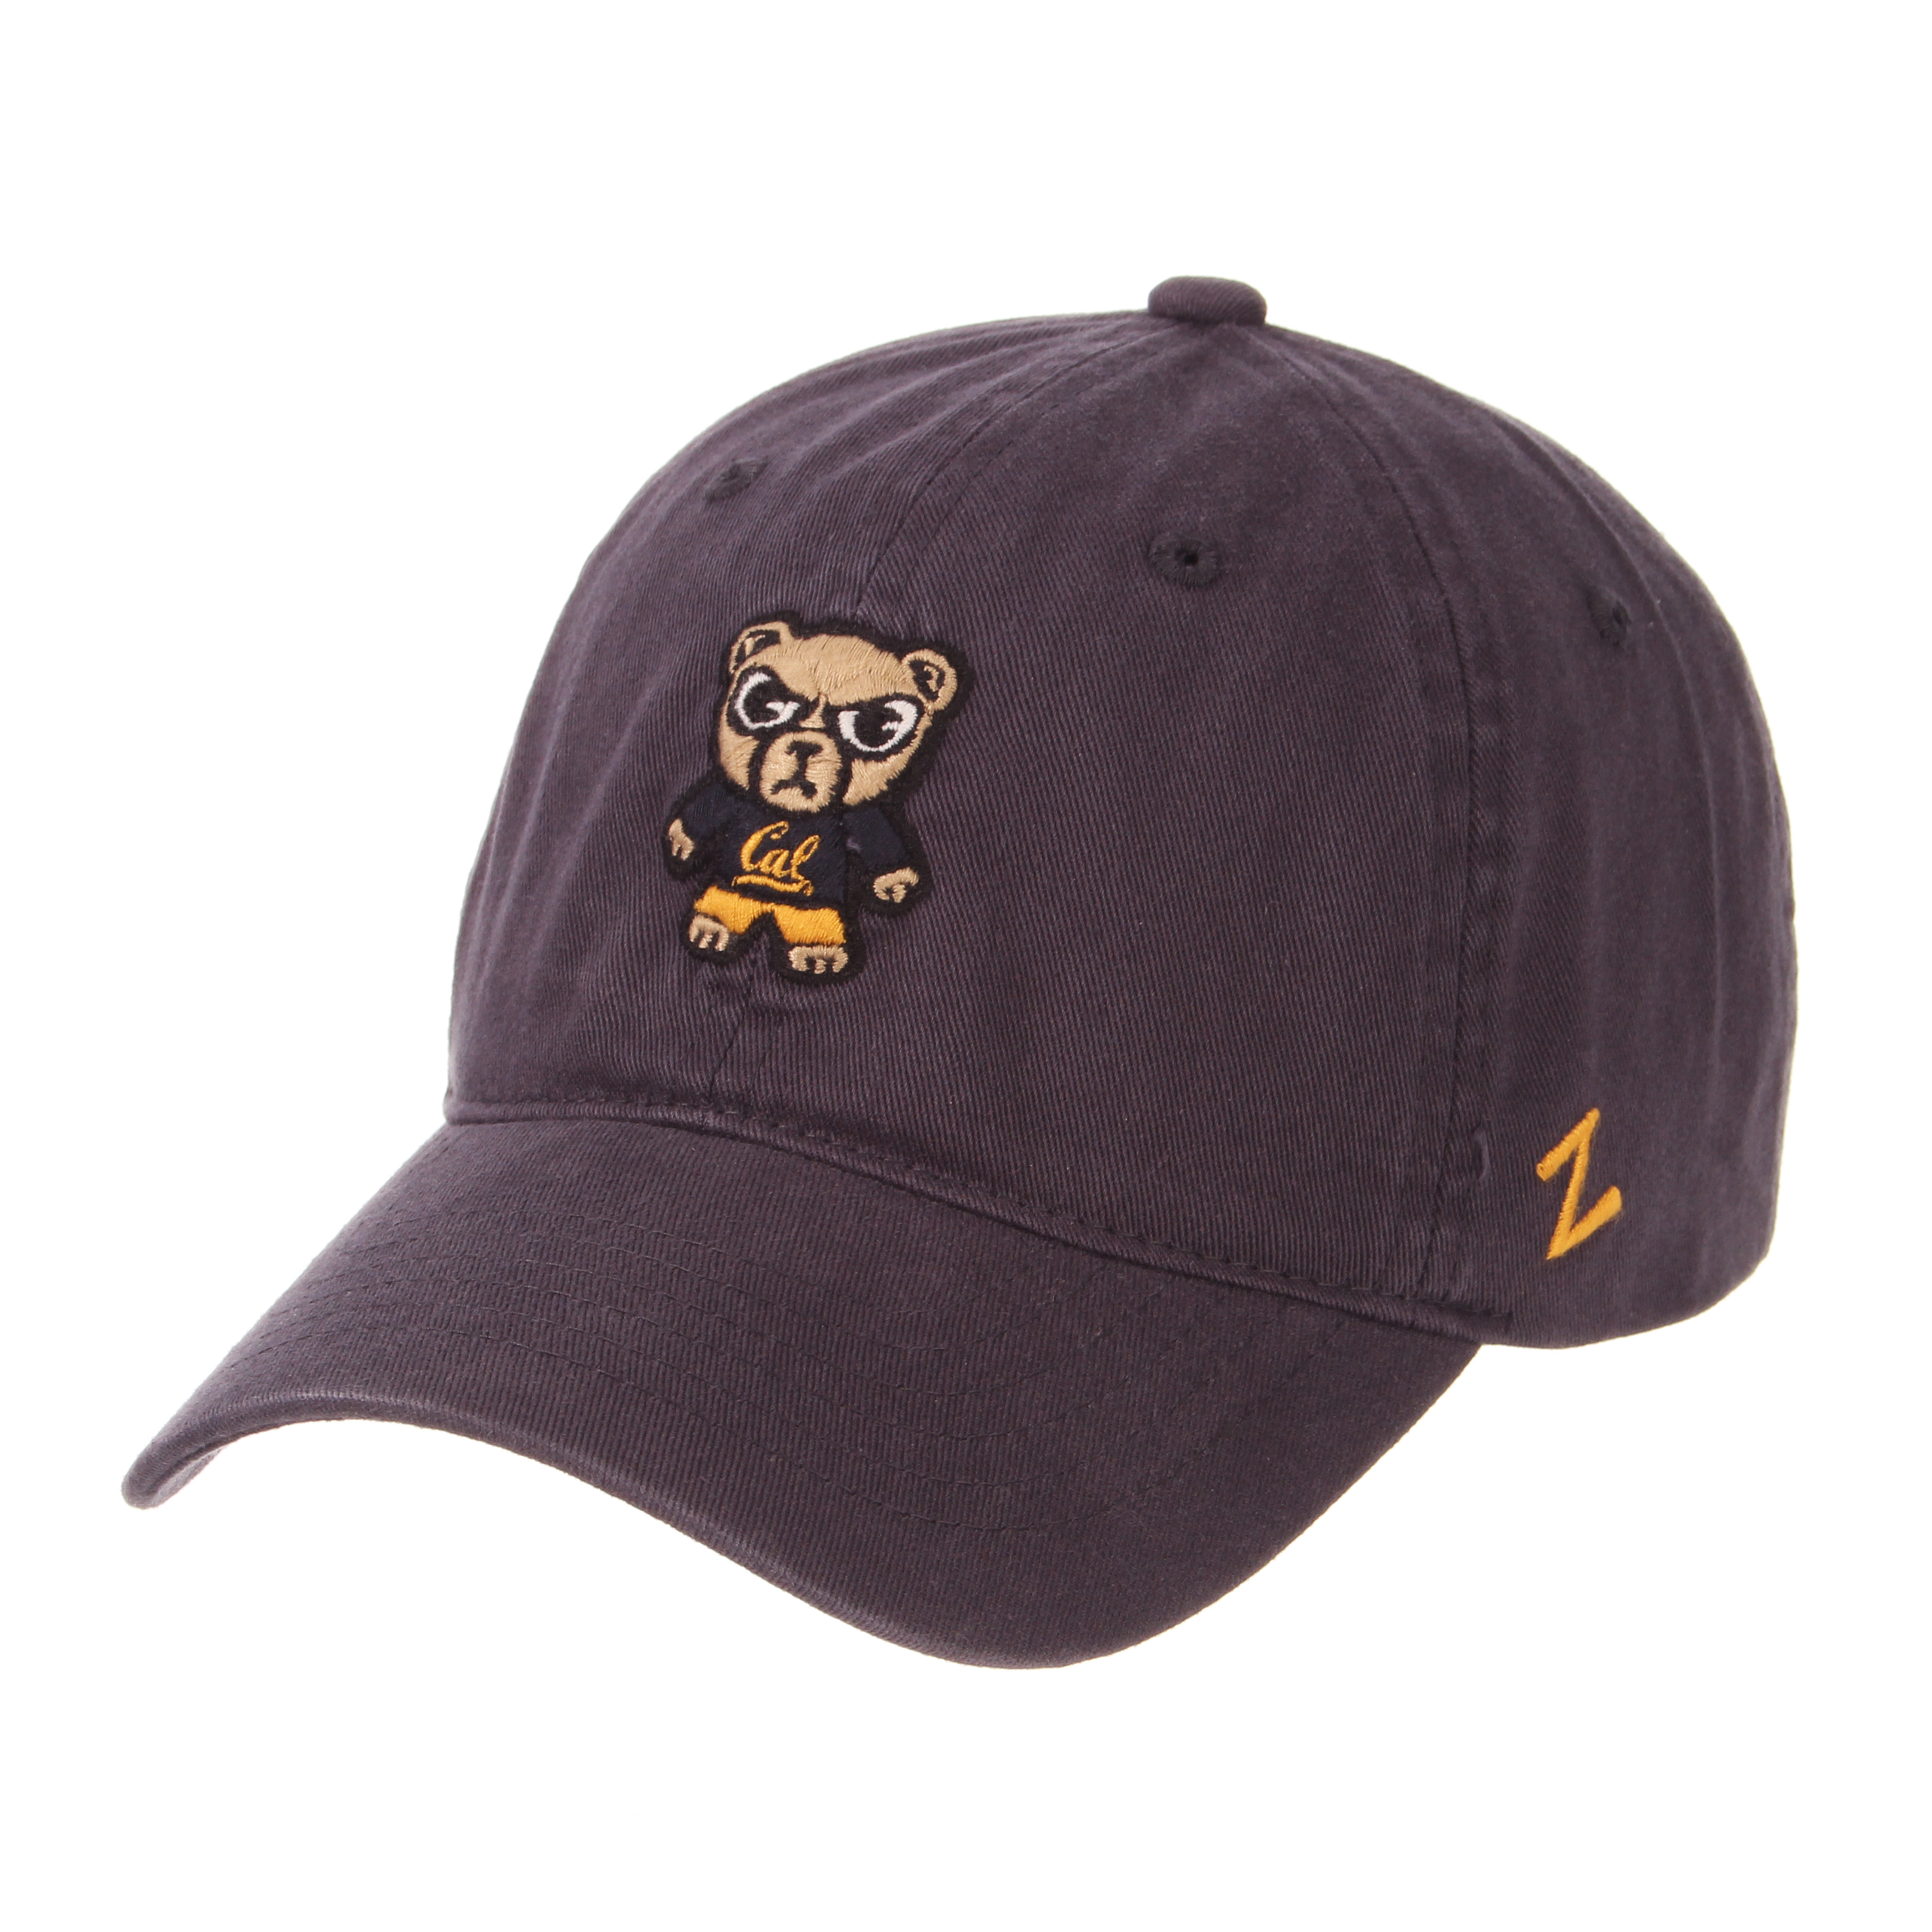 Cal Bears Zephyr Tokyodachi Oski Adjustable Cap